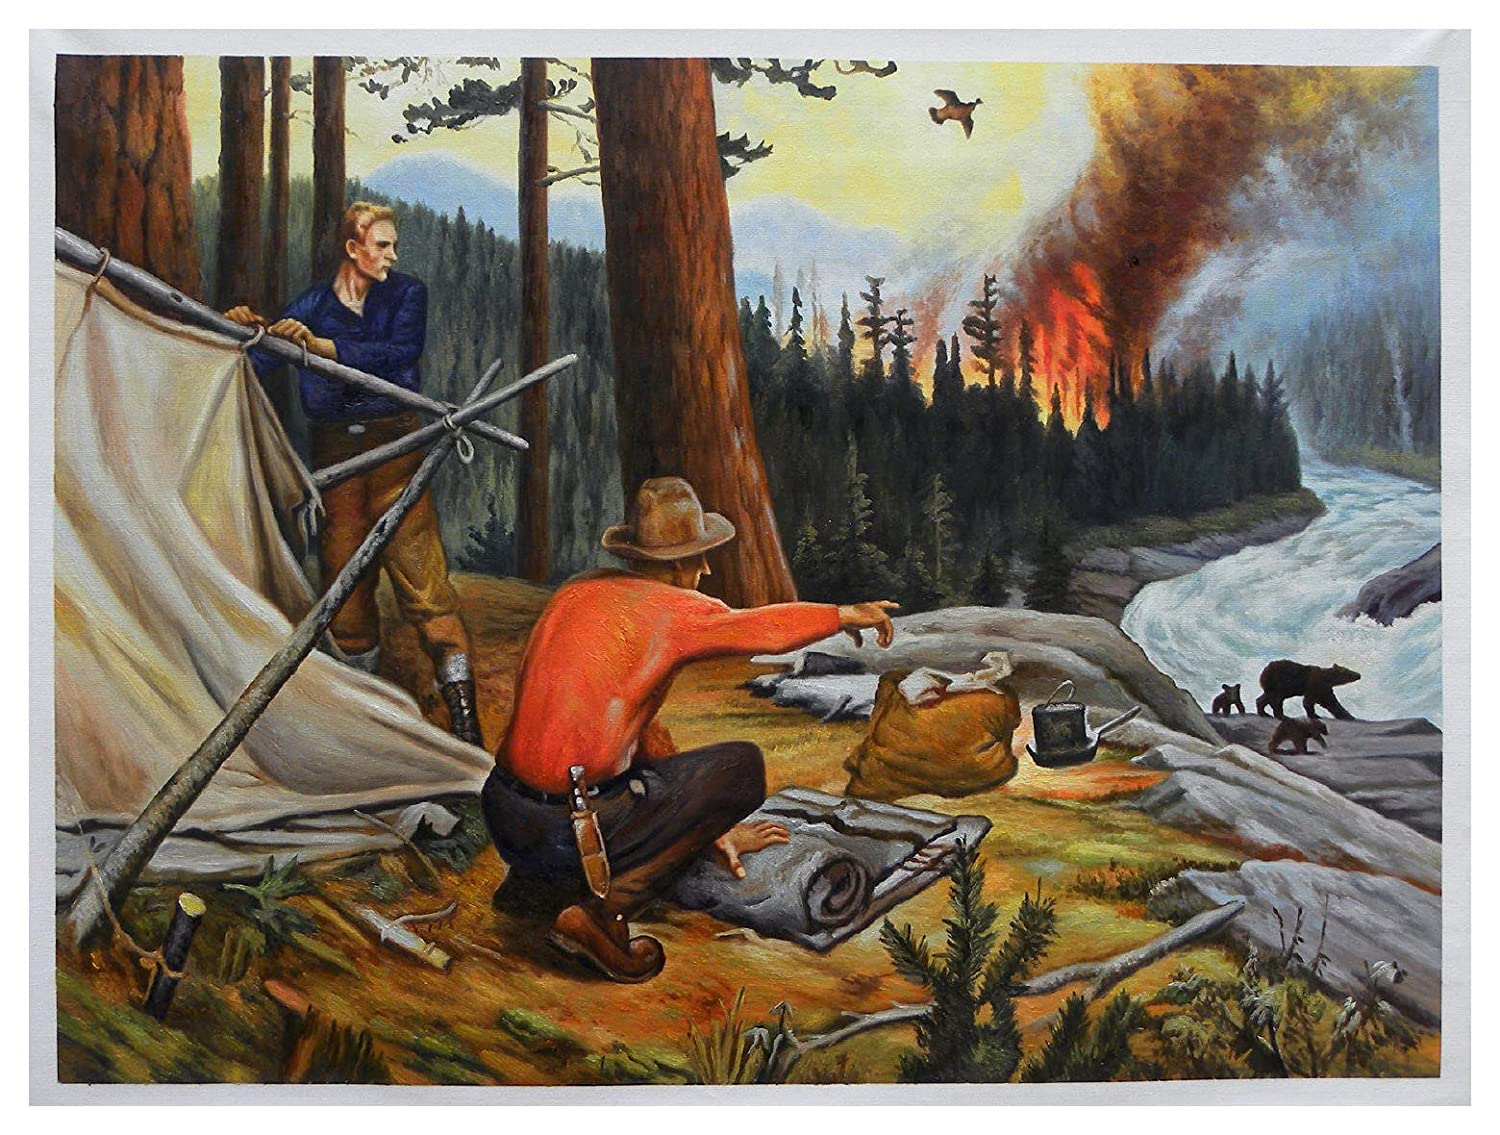 Red Demon of the Forest - Philip Goodwin hand-painted oil painting reproduction, Bears on Mountain Stream Bank, living room large wall decor